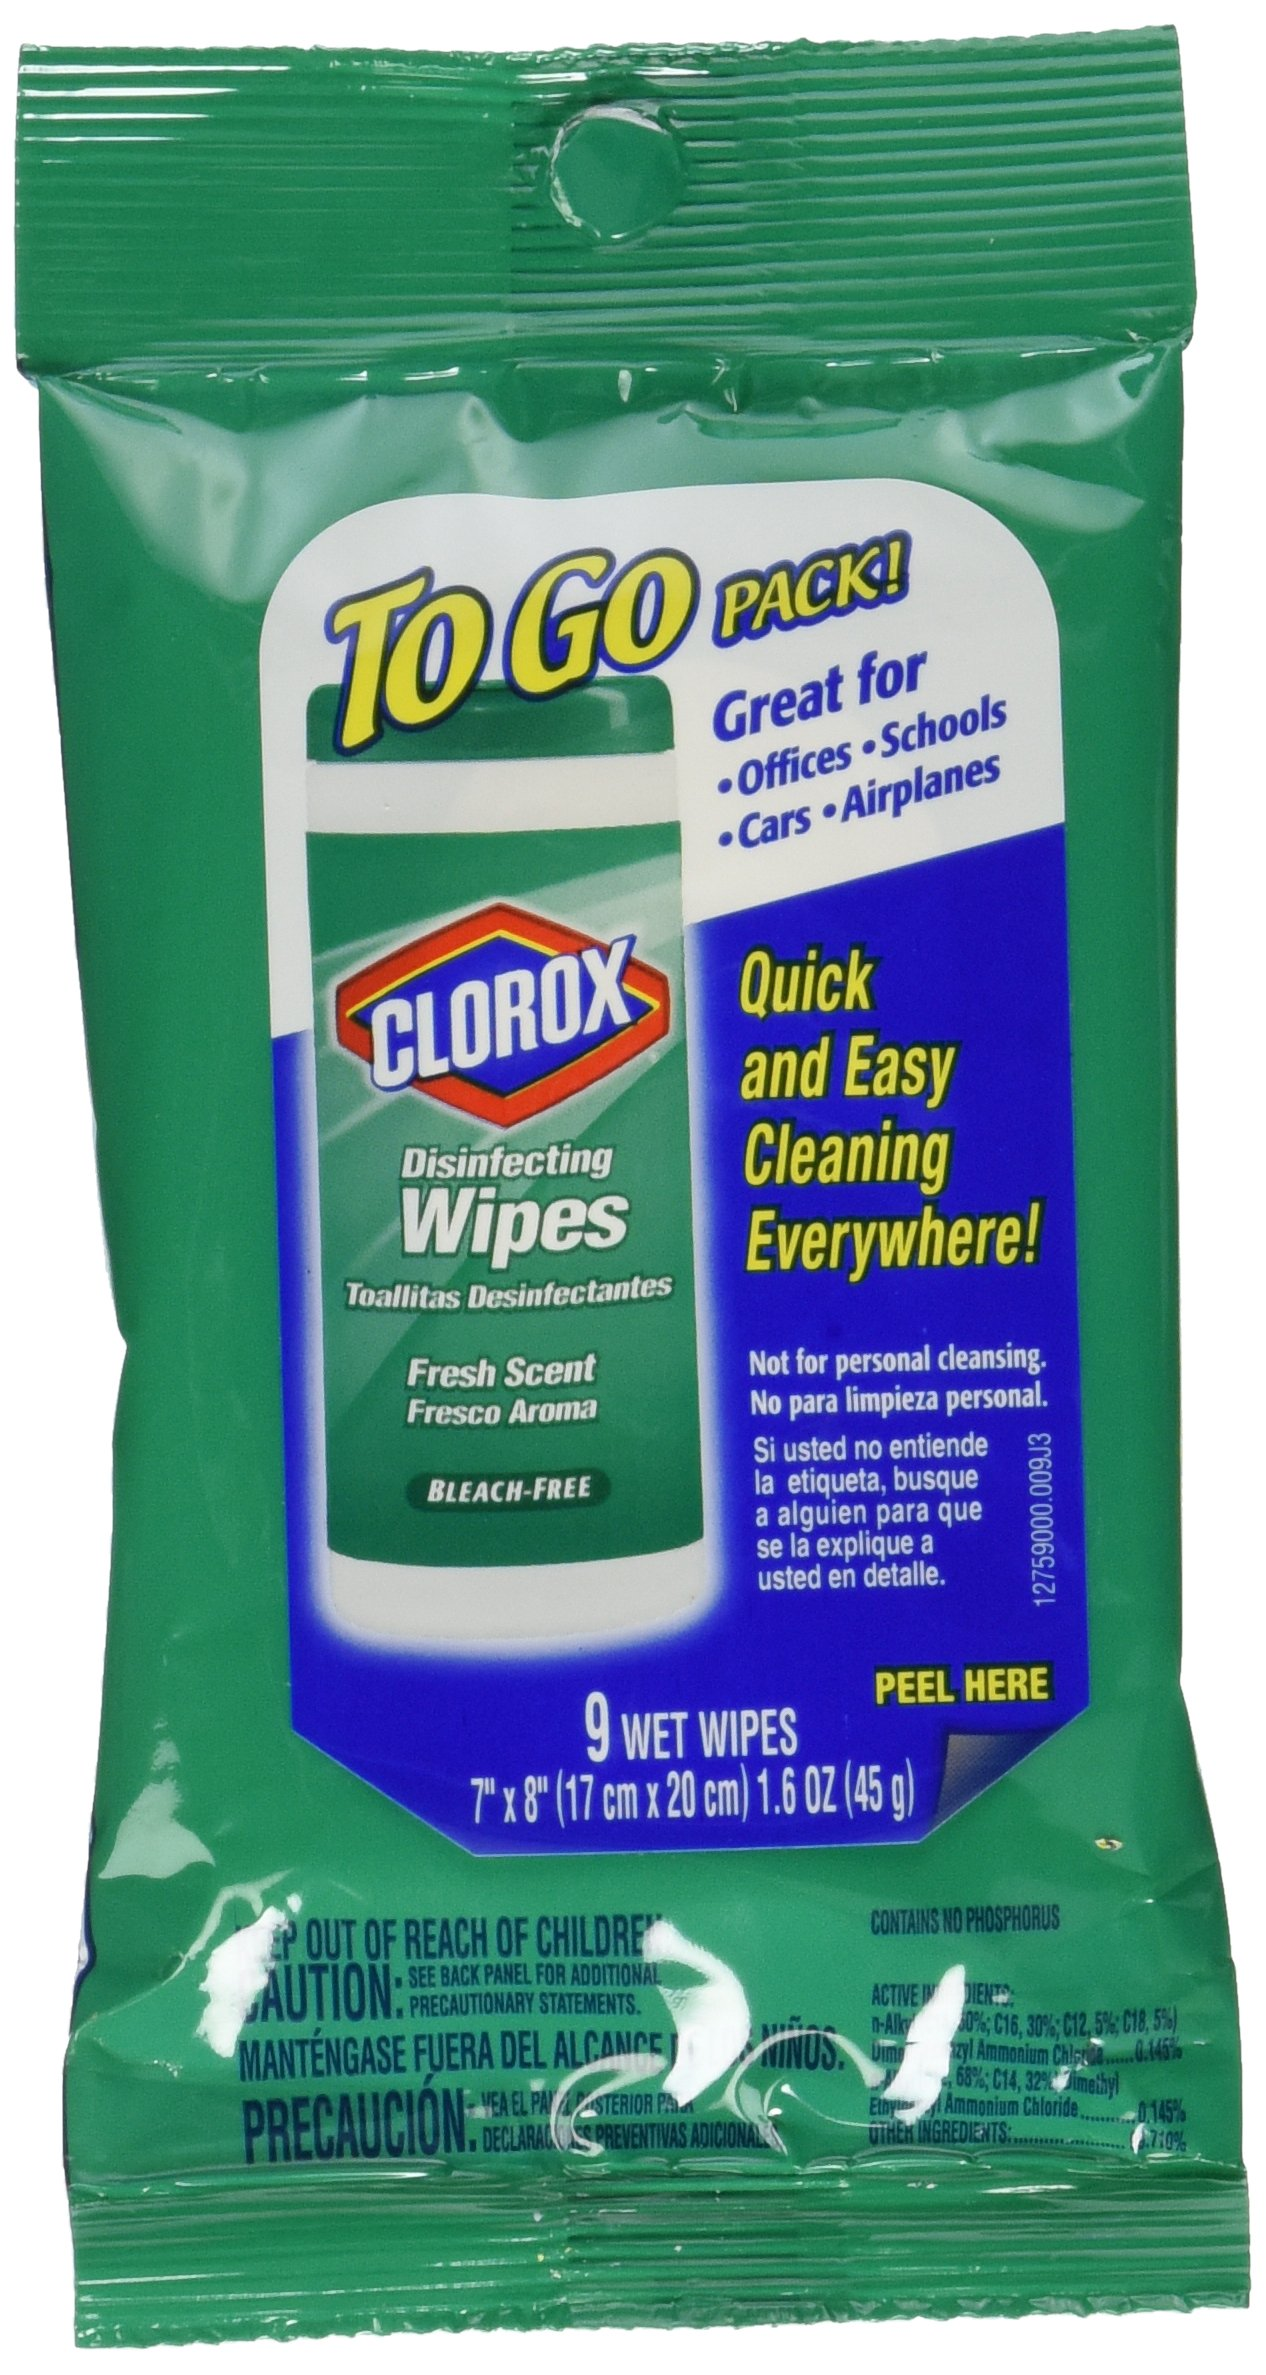 Clorox Disinfecting Wipes To Go, Fresh Scent, Twenty- Four 9 Count Pack (216 Wipes) by Clorox Disinfecting Wipes (Image #1)